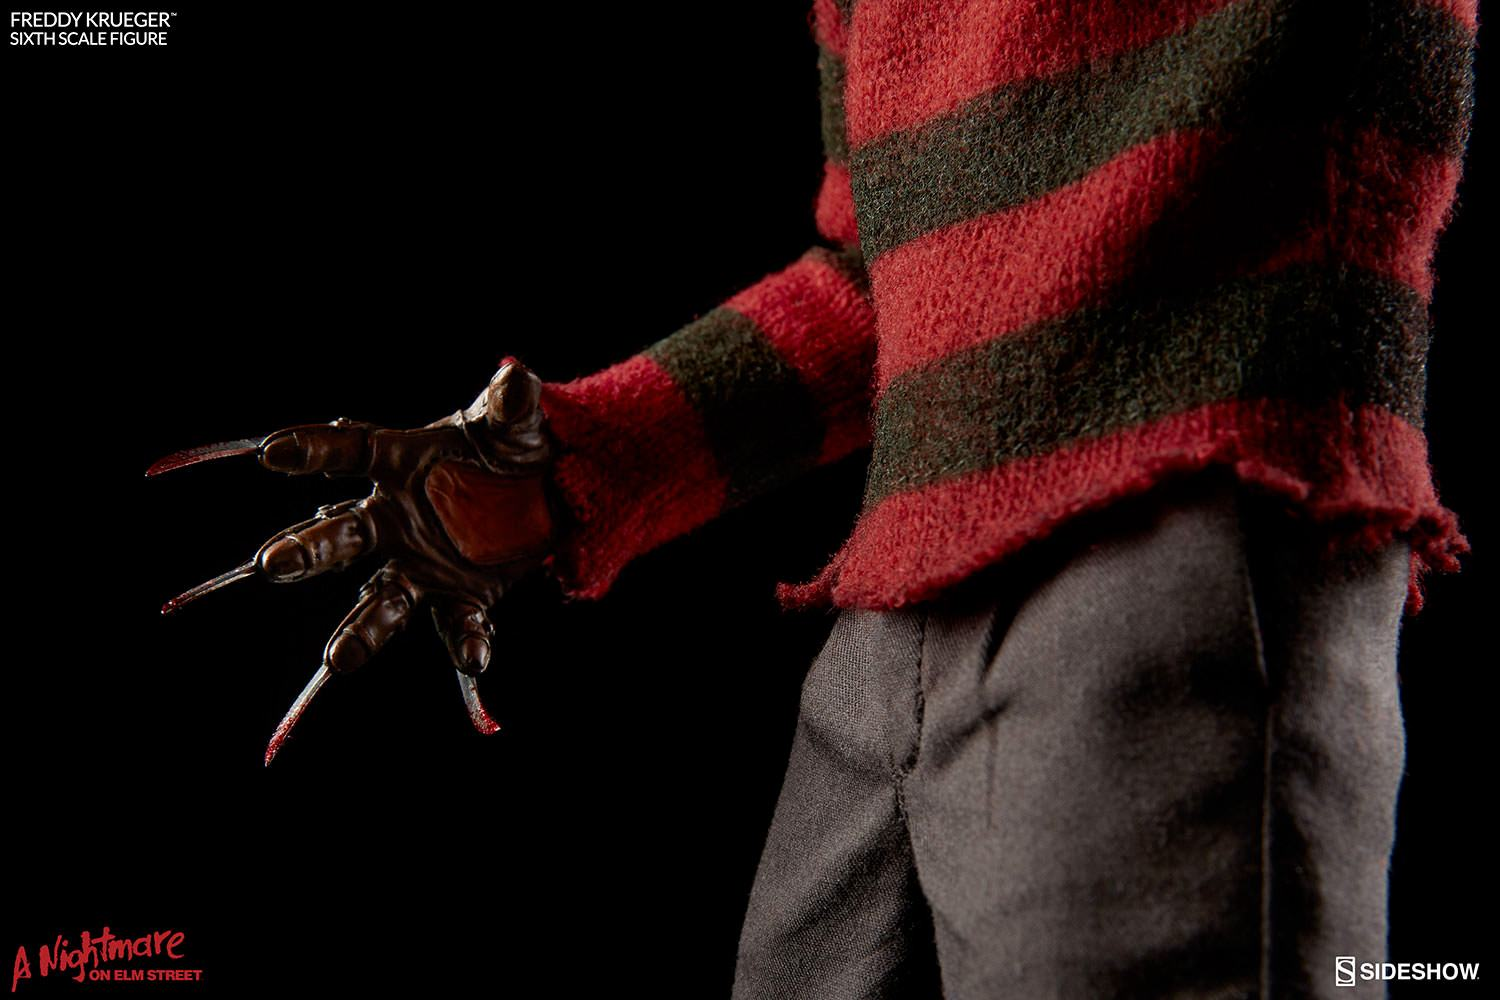 freddy-krueger-sixth-scale-figure-sideshow-07